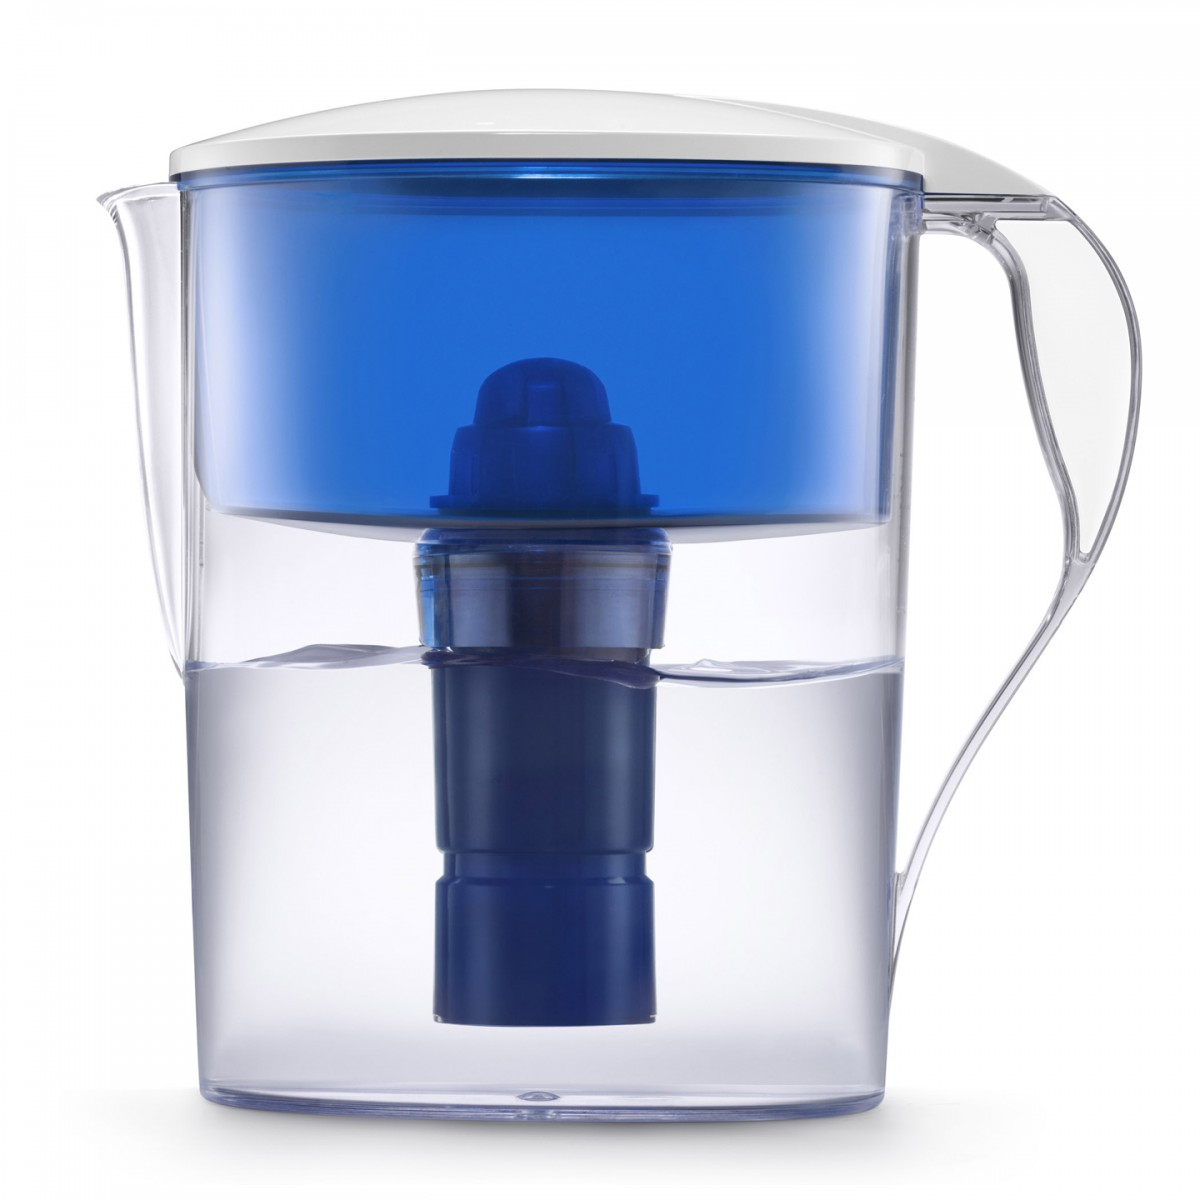 Pur Cr 6000 7 Cup Water Filter Pitcher Discount Filter Store